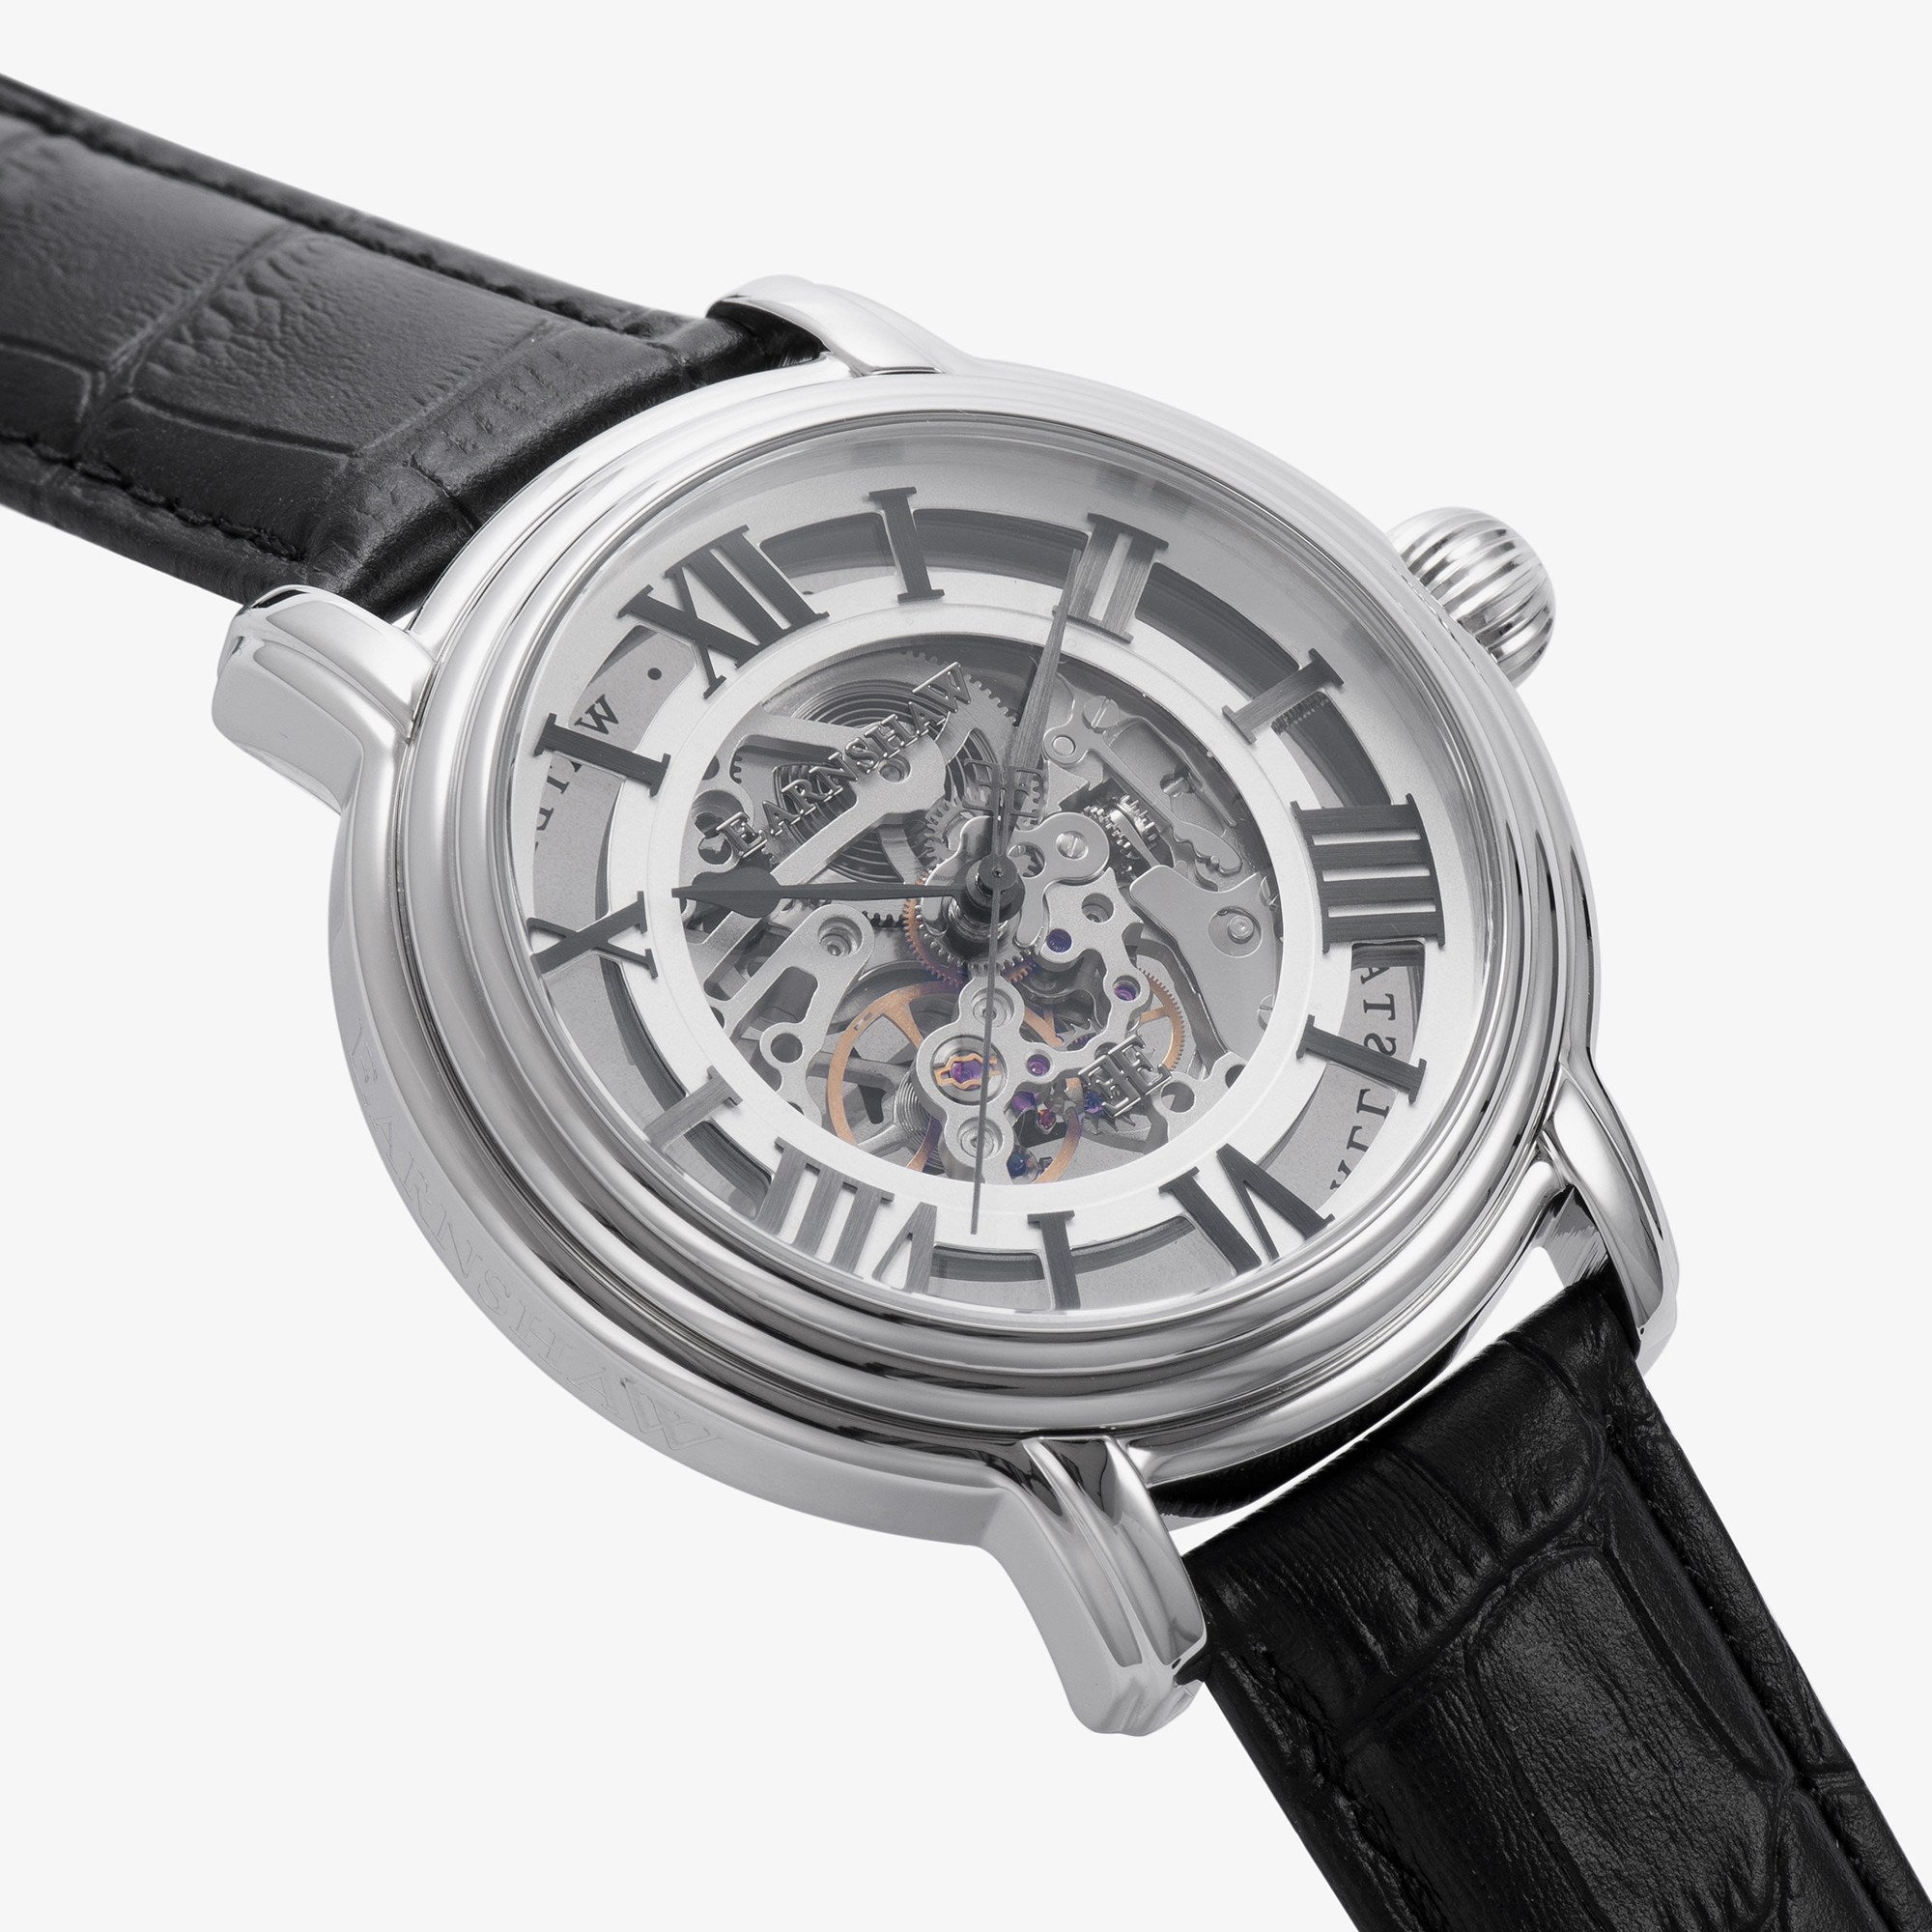 Thomas Earnshaw THOMAS EARNSHAW SWISS MADE Longcase Automatic Skeleton Watch With Black Genuine Leather Strap ES-0032-01